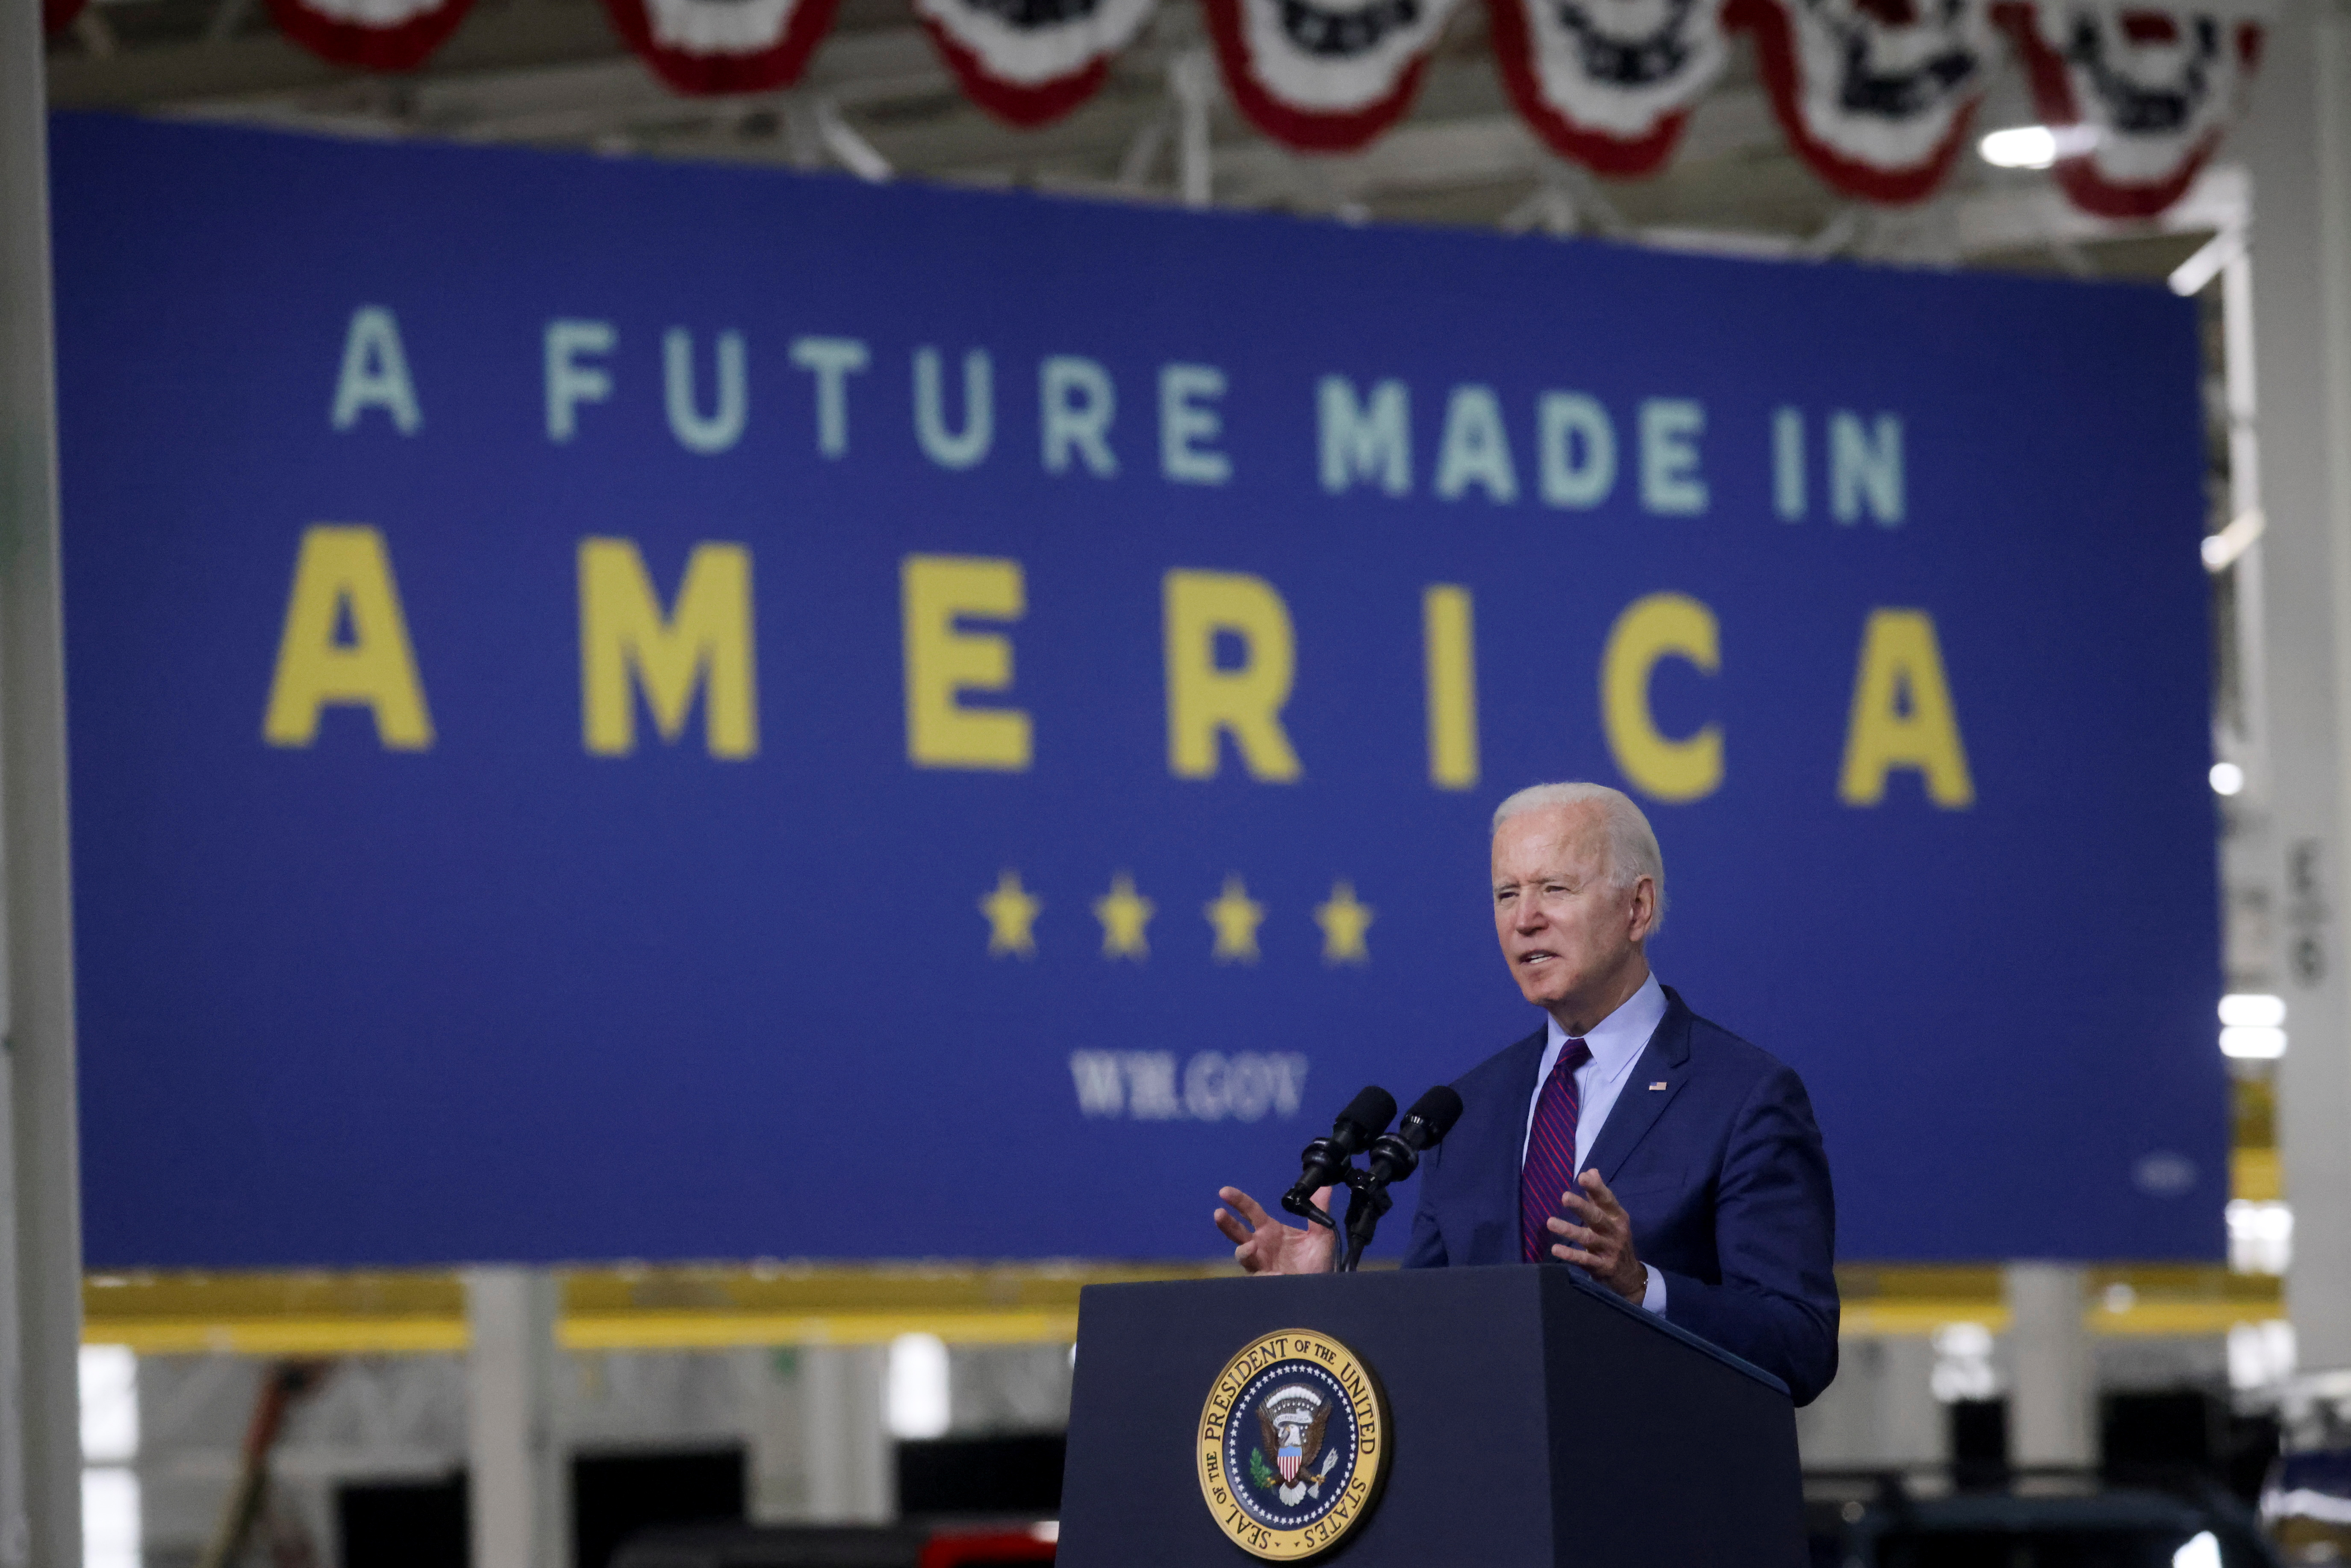 U.S. President Joe Biden delivers remarks after touring Ford Rouge Electric Vehicle Center in Dearborn, Michigan, U.S., May 18, 2021.  REUTERS/Leah Millis